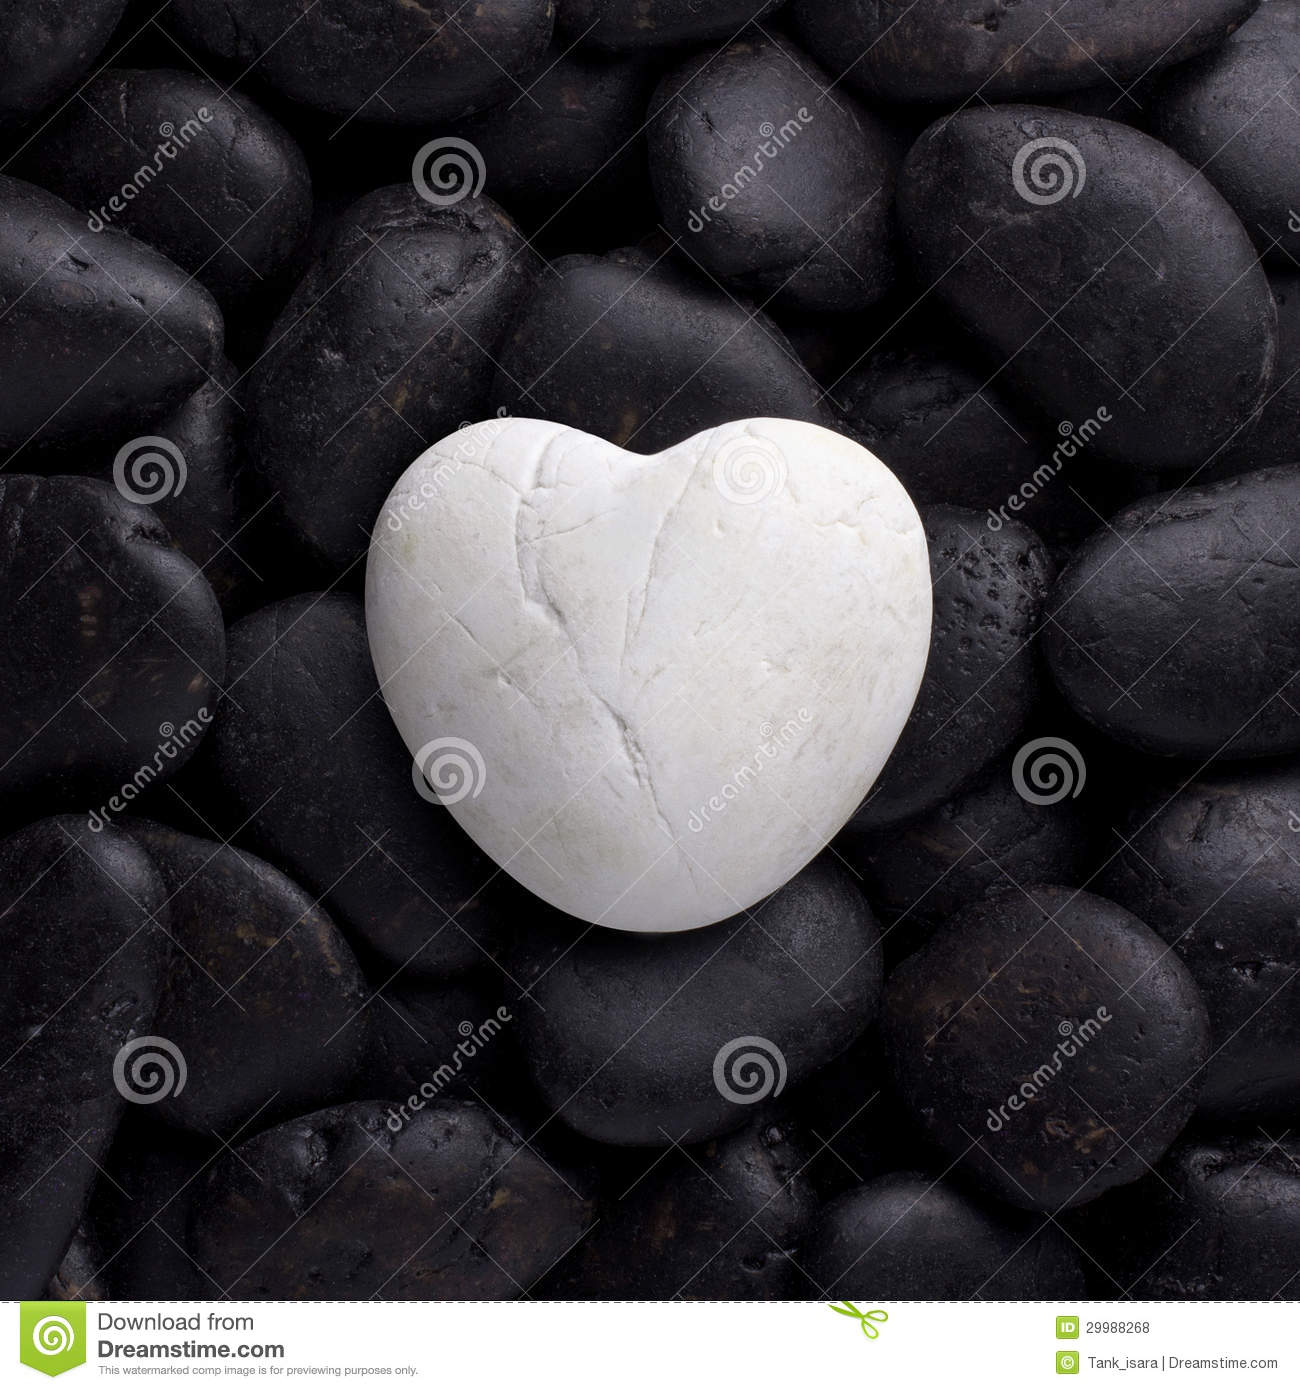 Smooth shaped white stones surface texture background stock photo - White Rock Stone In Heart Shape On Black Pebble Royalty Free Stock Photos